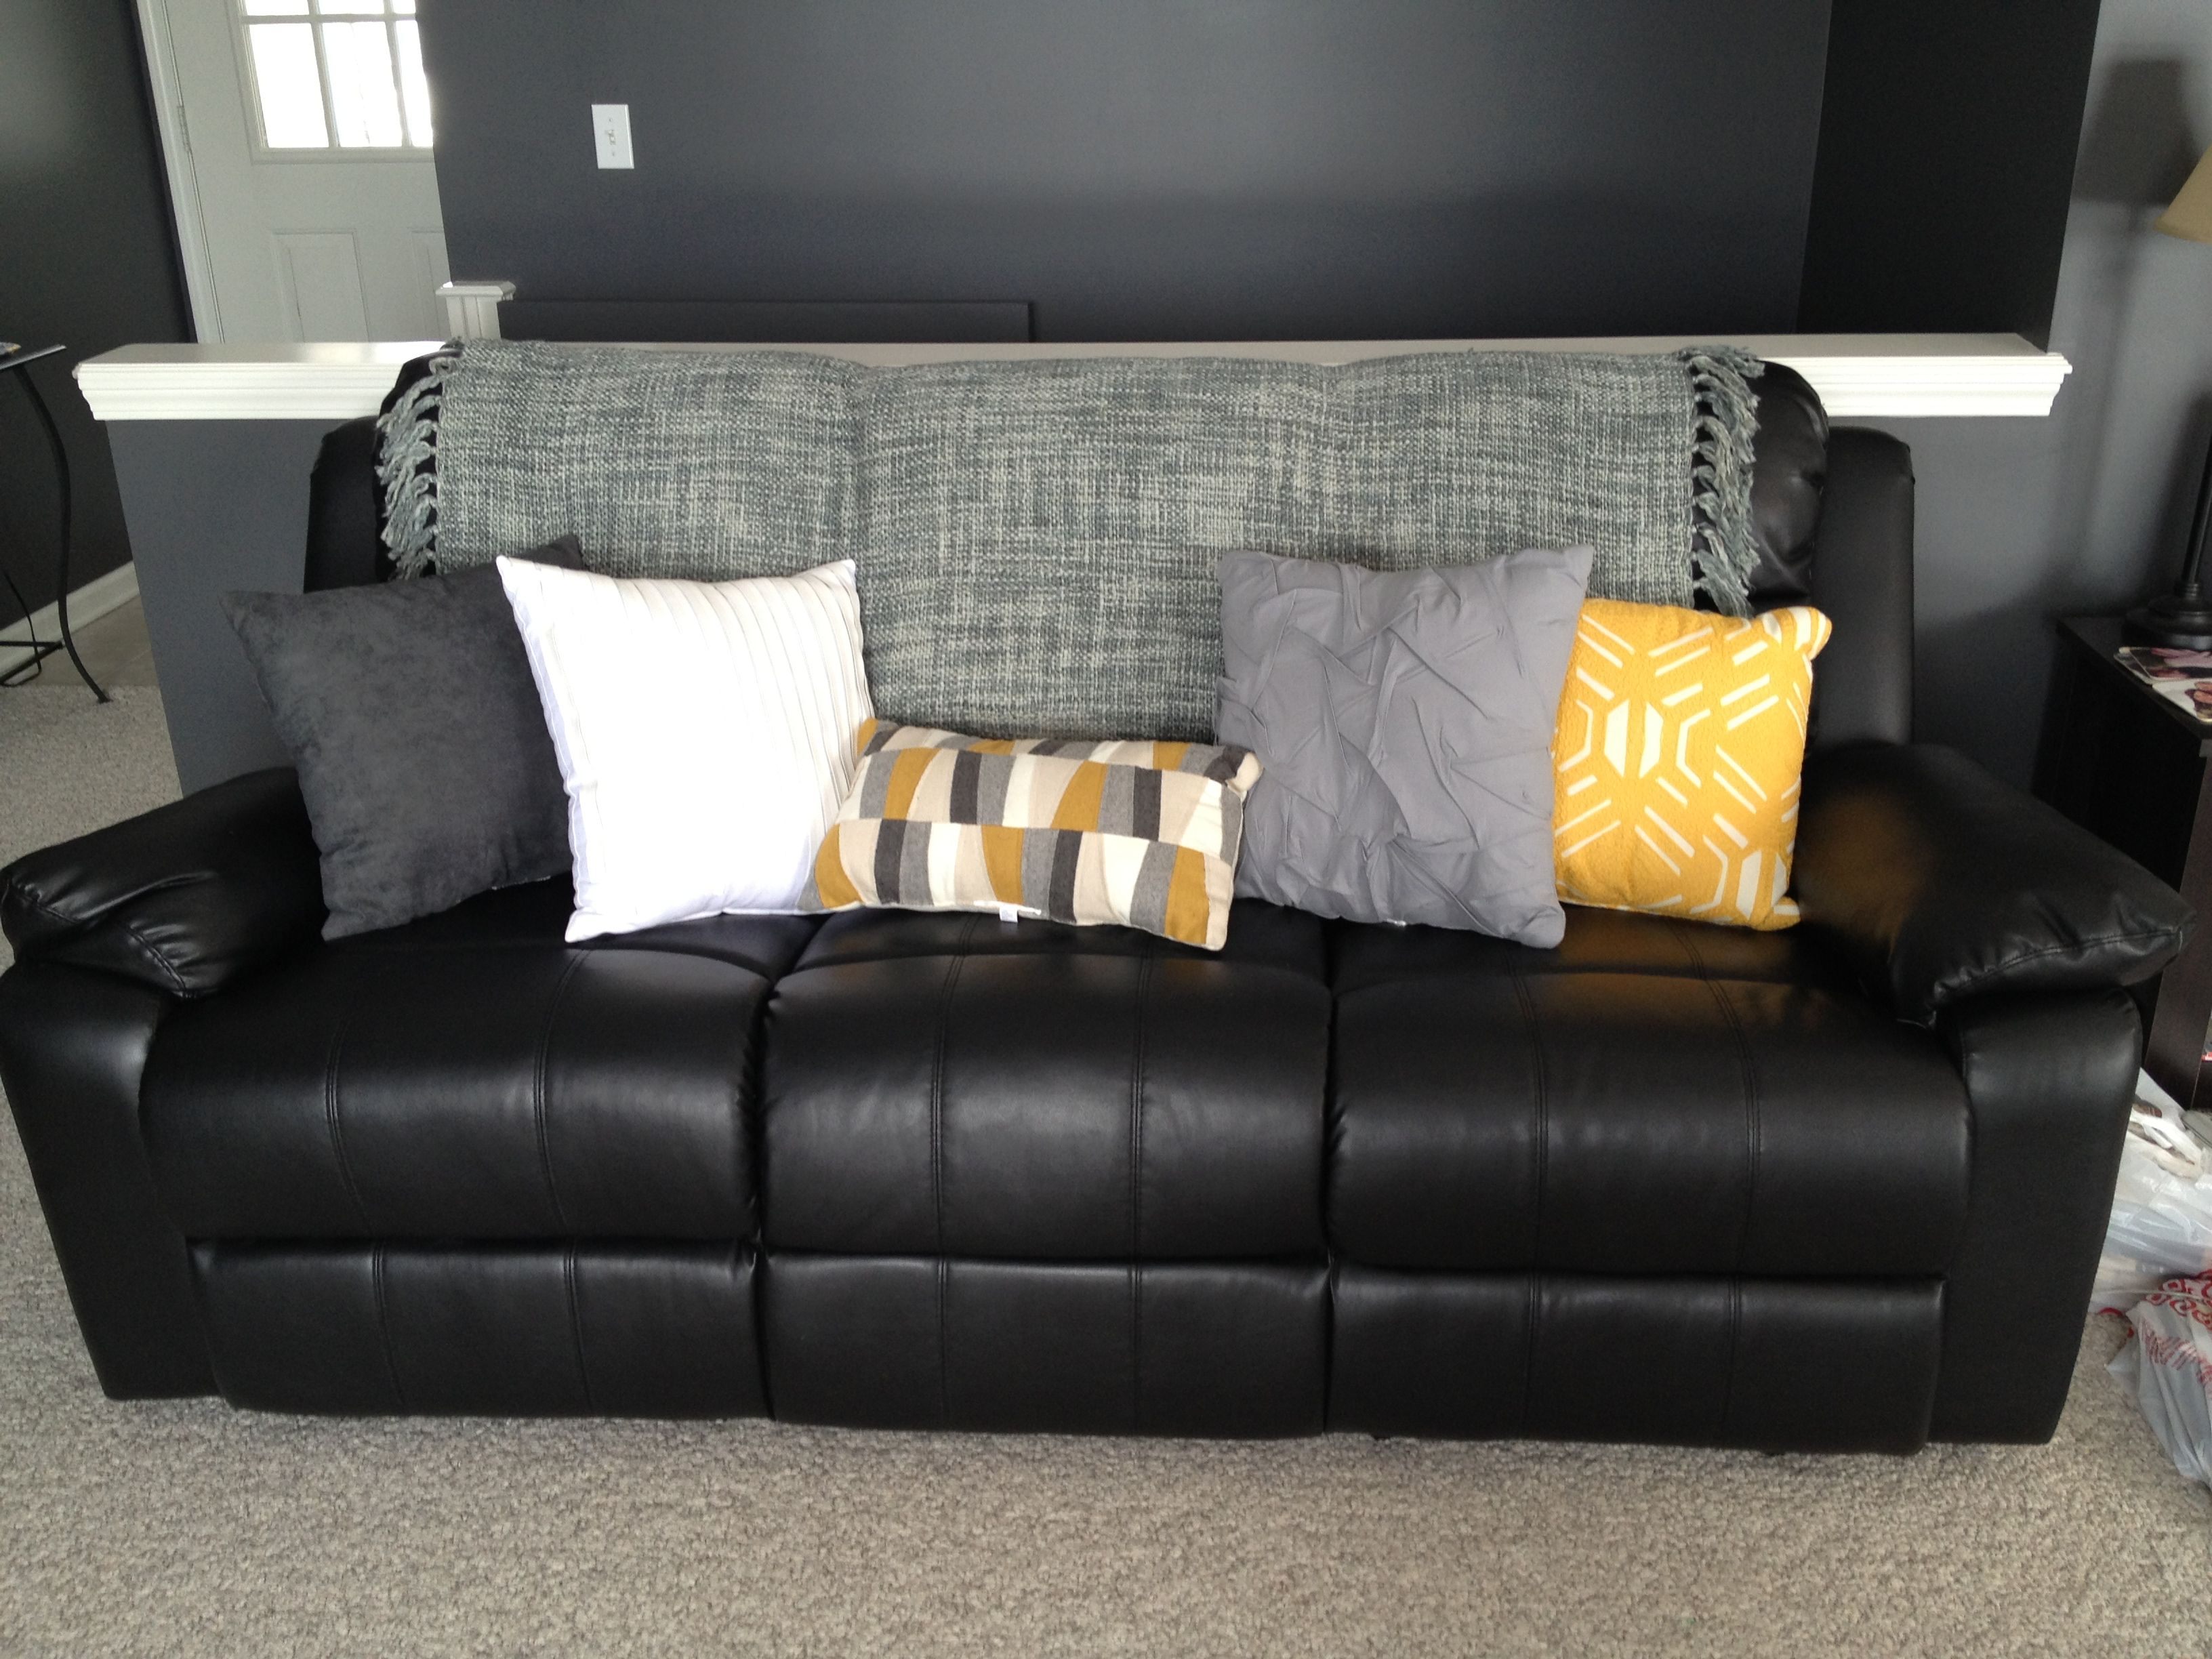 Lighten Up A Black Leather Couch With Bright Pillows And Throw